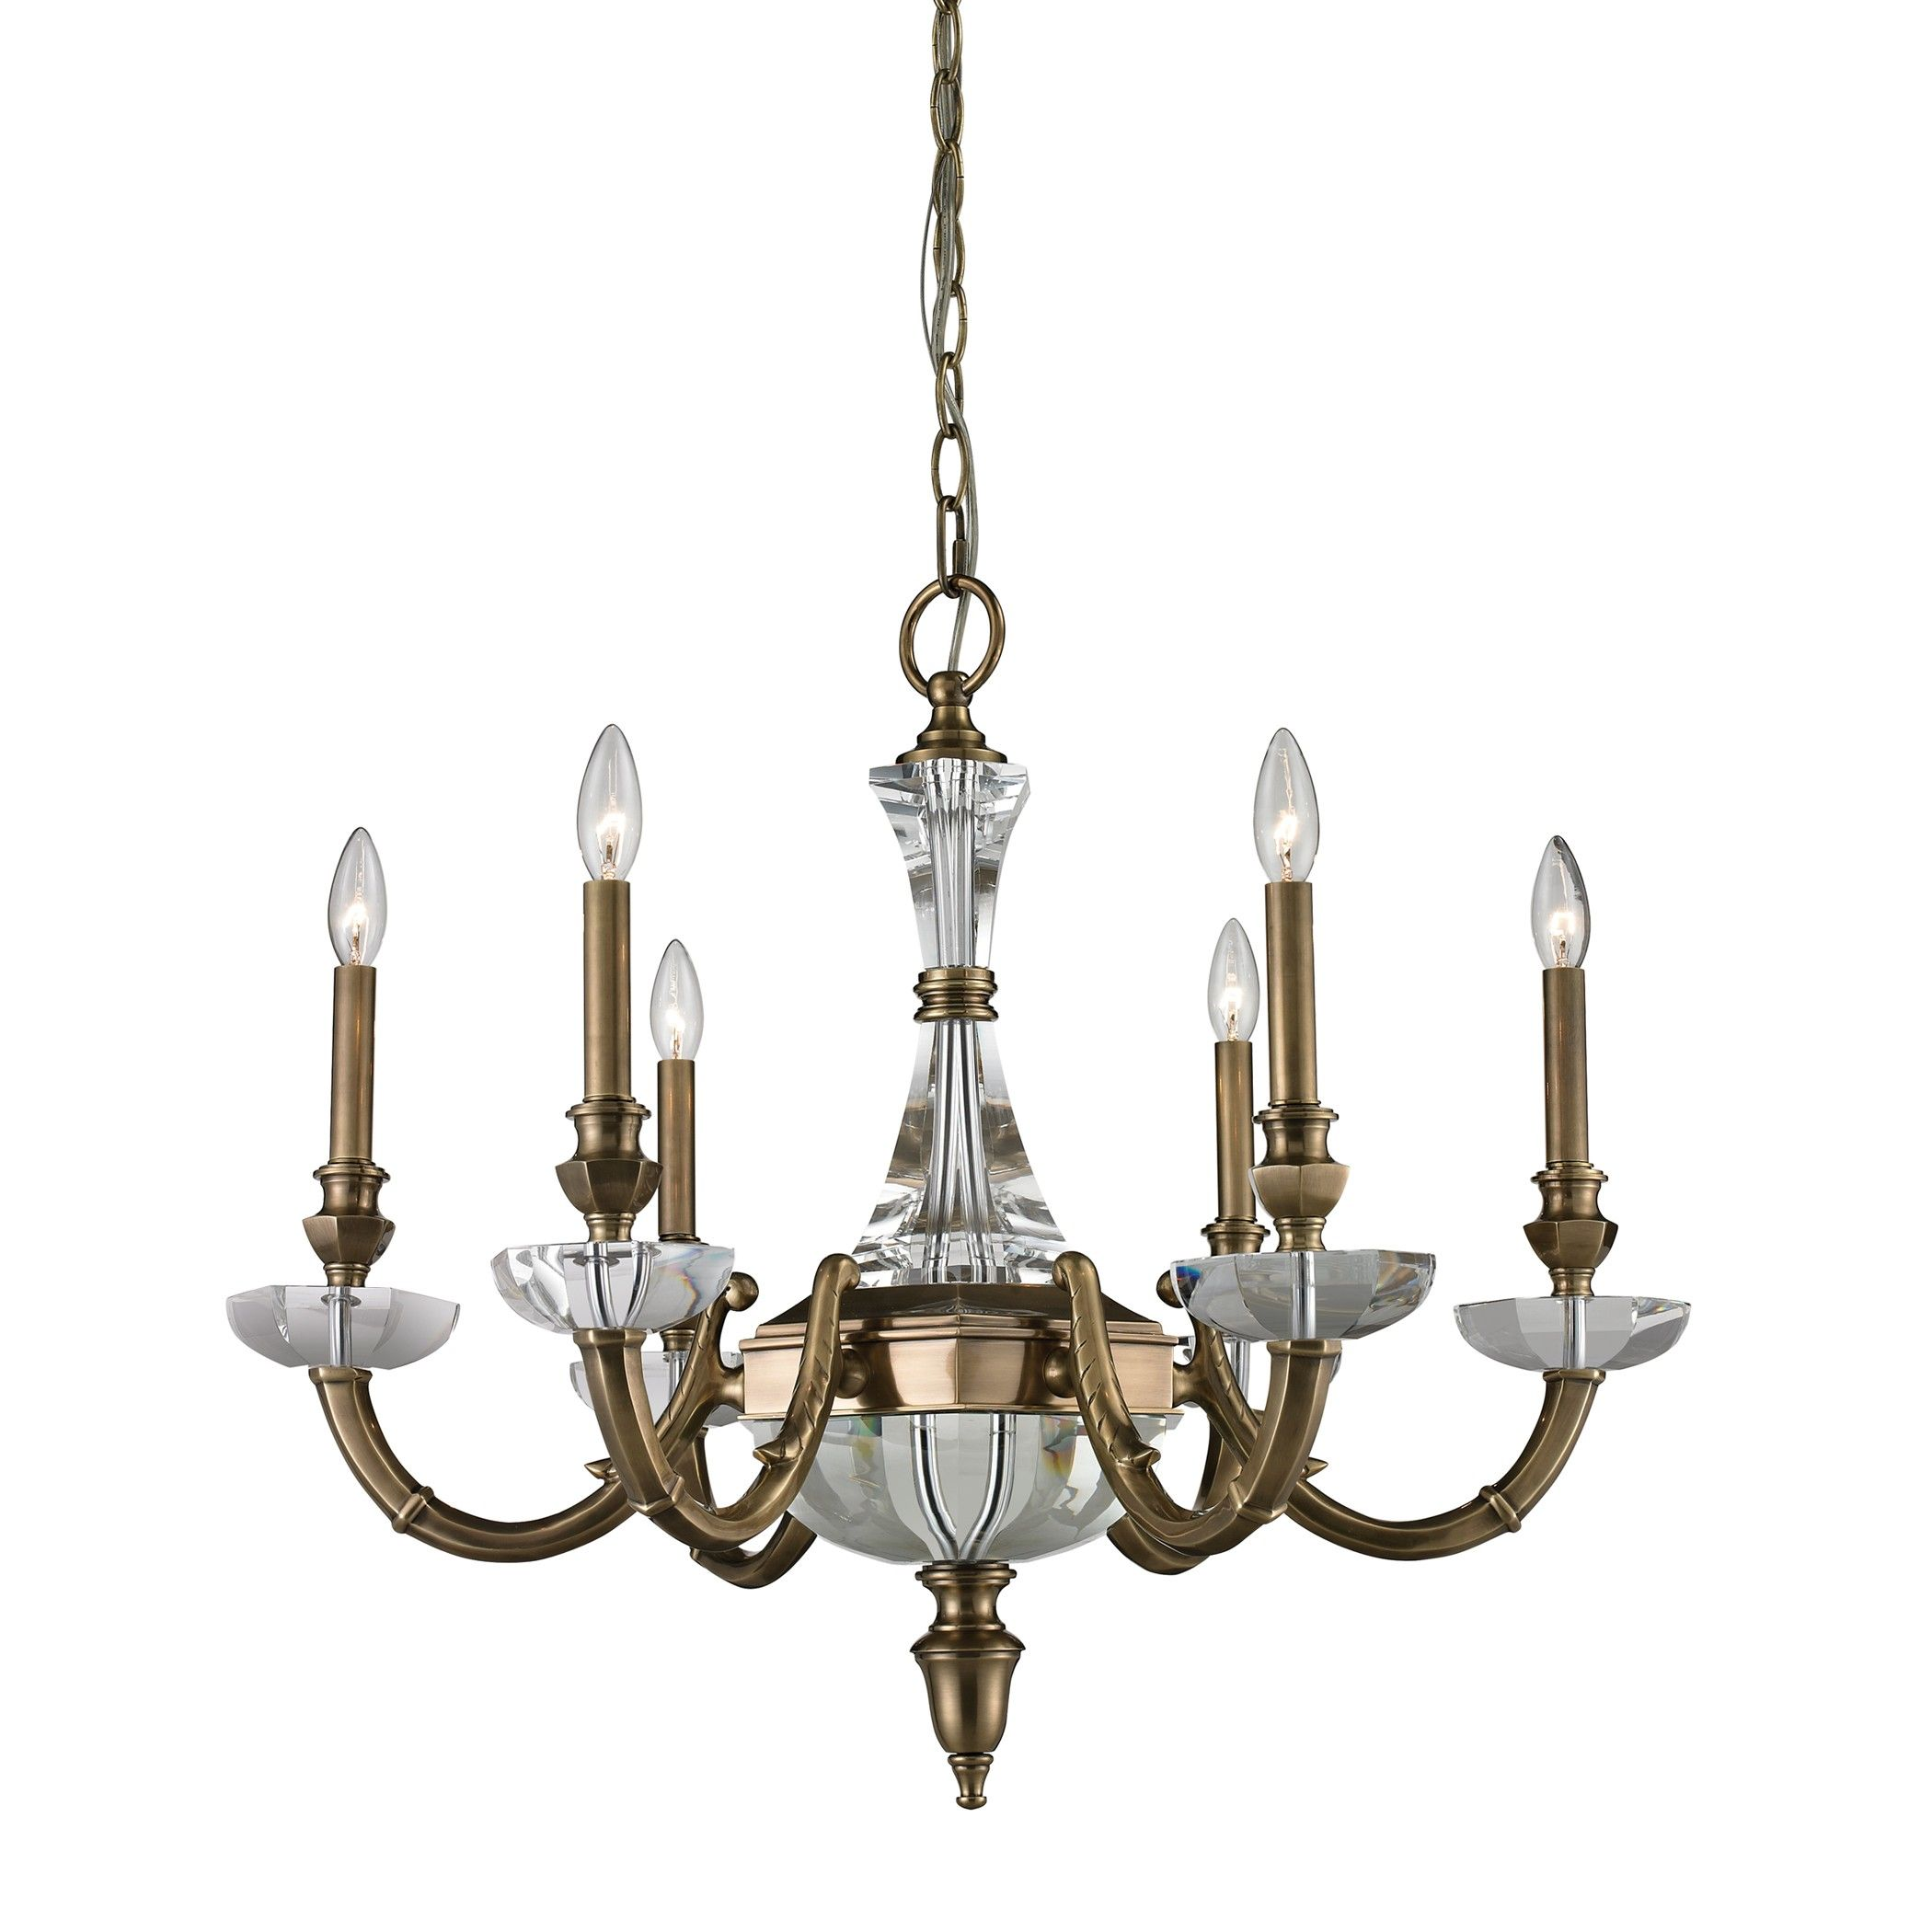 ARUNDEL 6 Light Brass And Crystal Chandelier Without Shade Free Shipping Ships In Dining Room